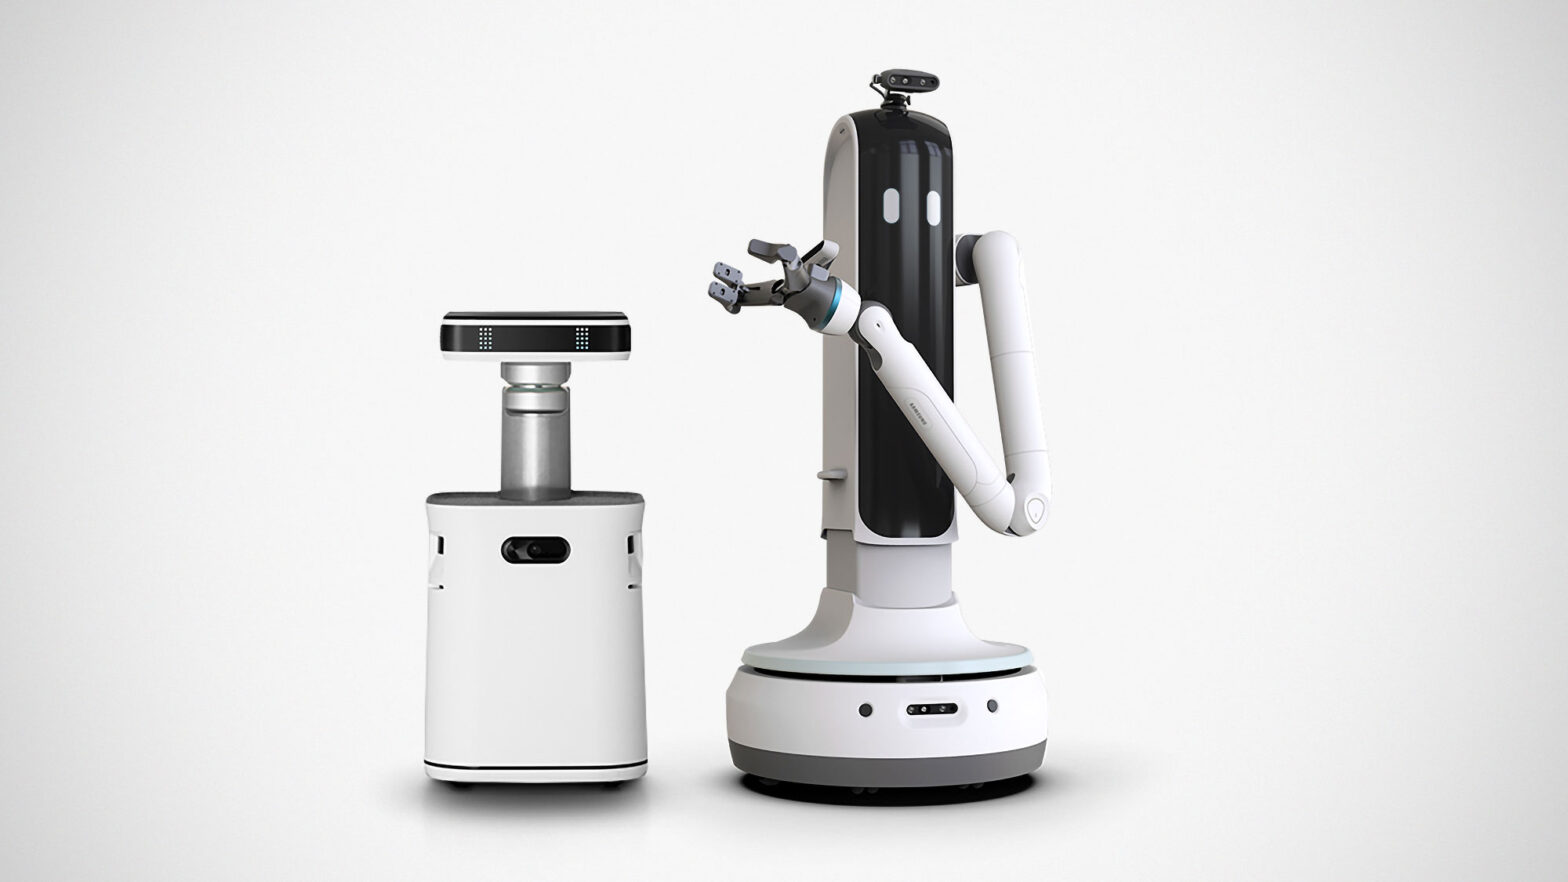 Samsung Next Generation Robotics